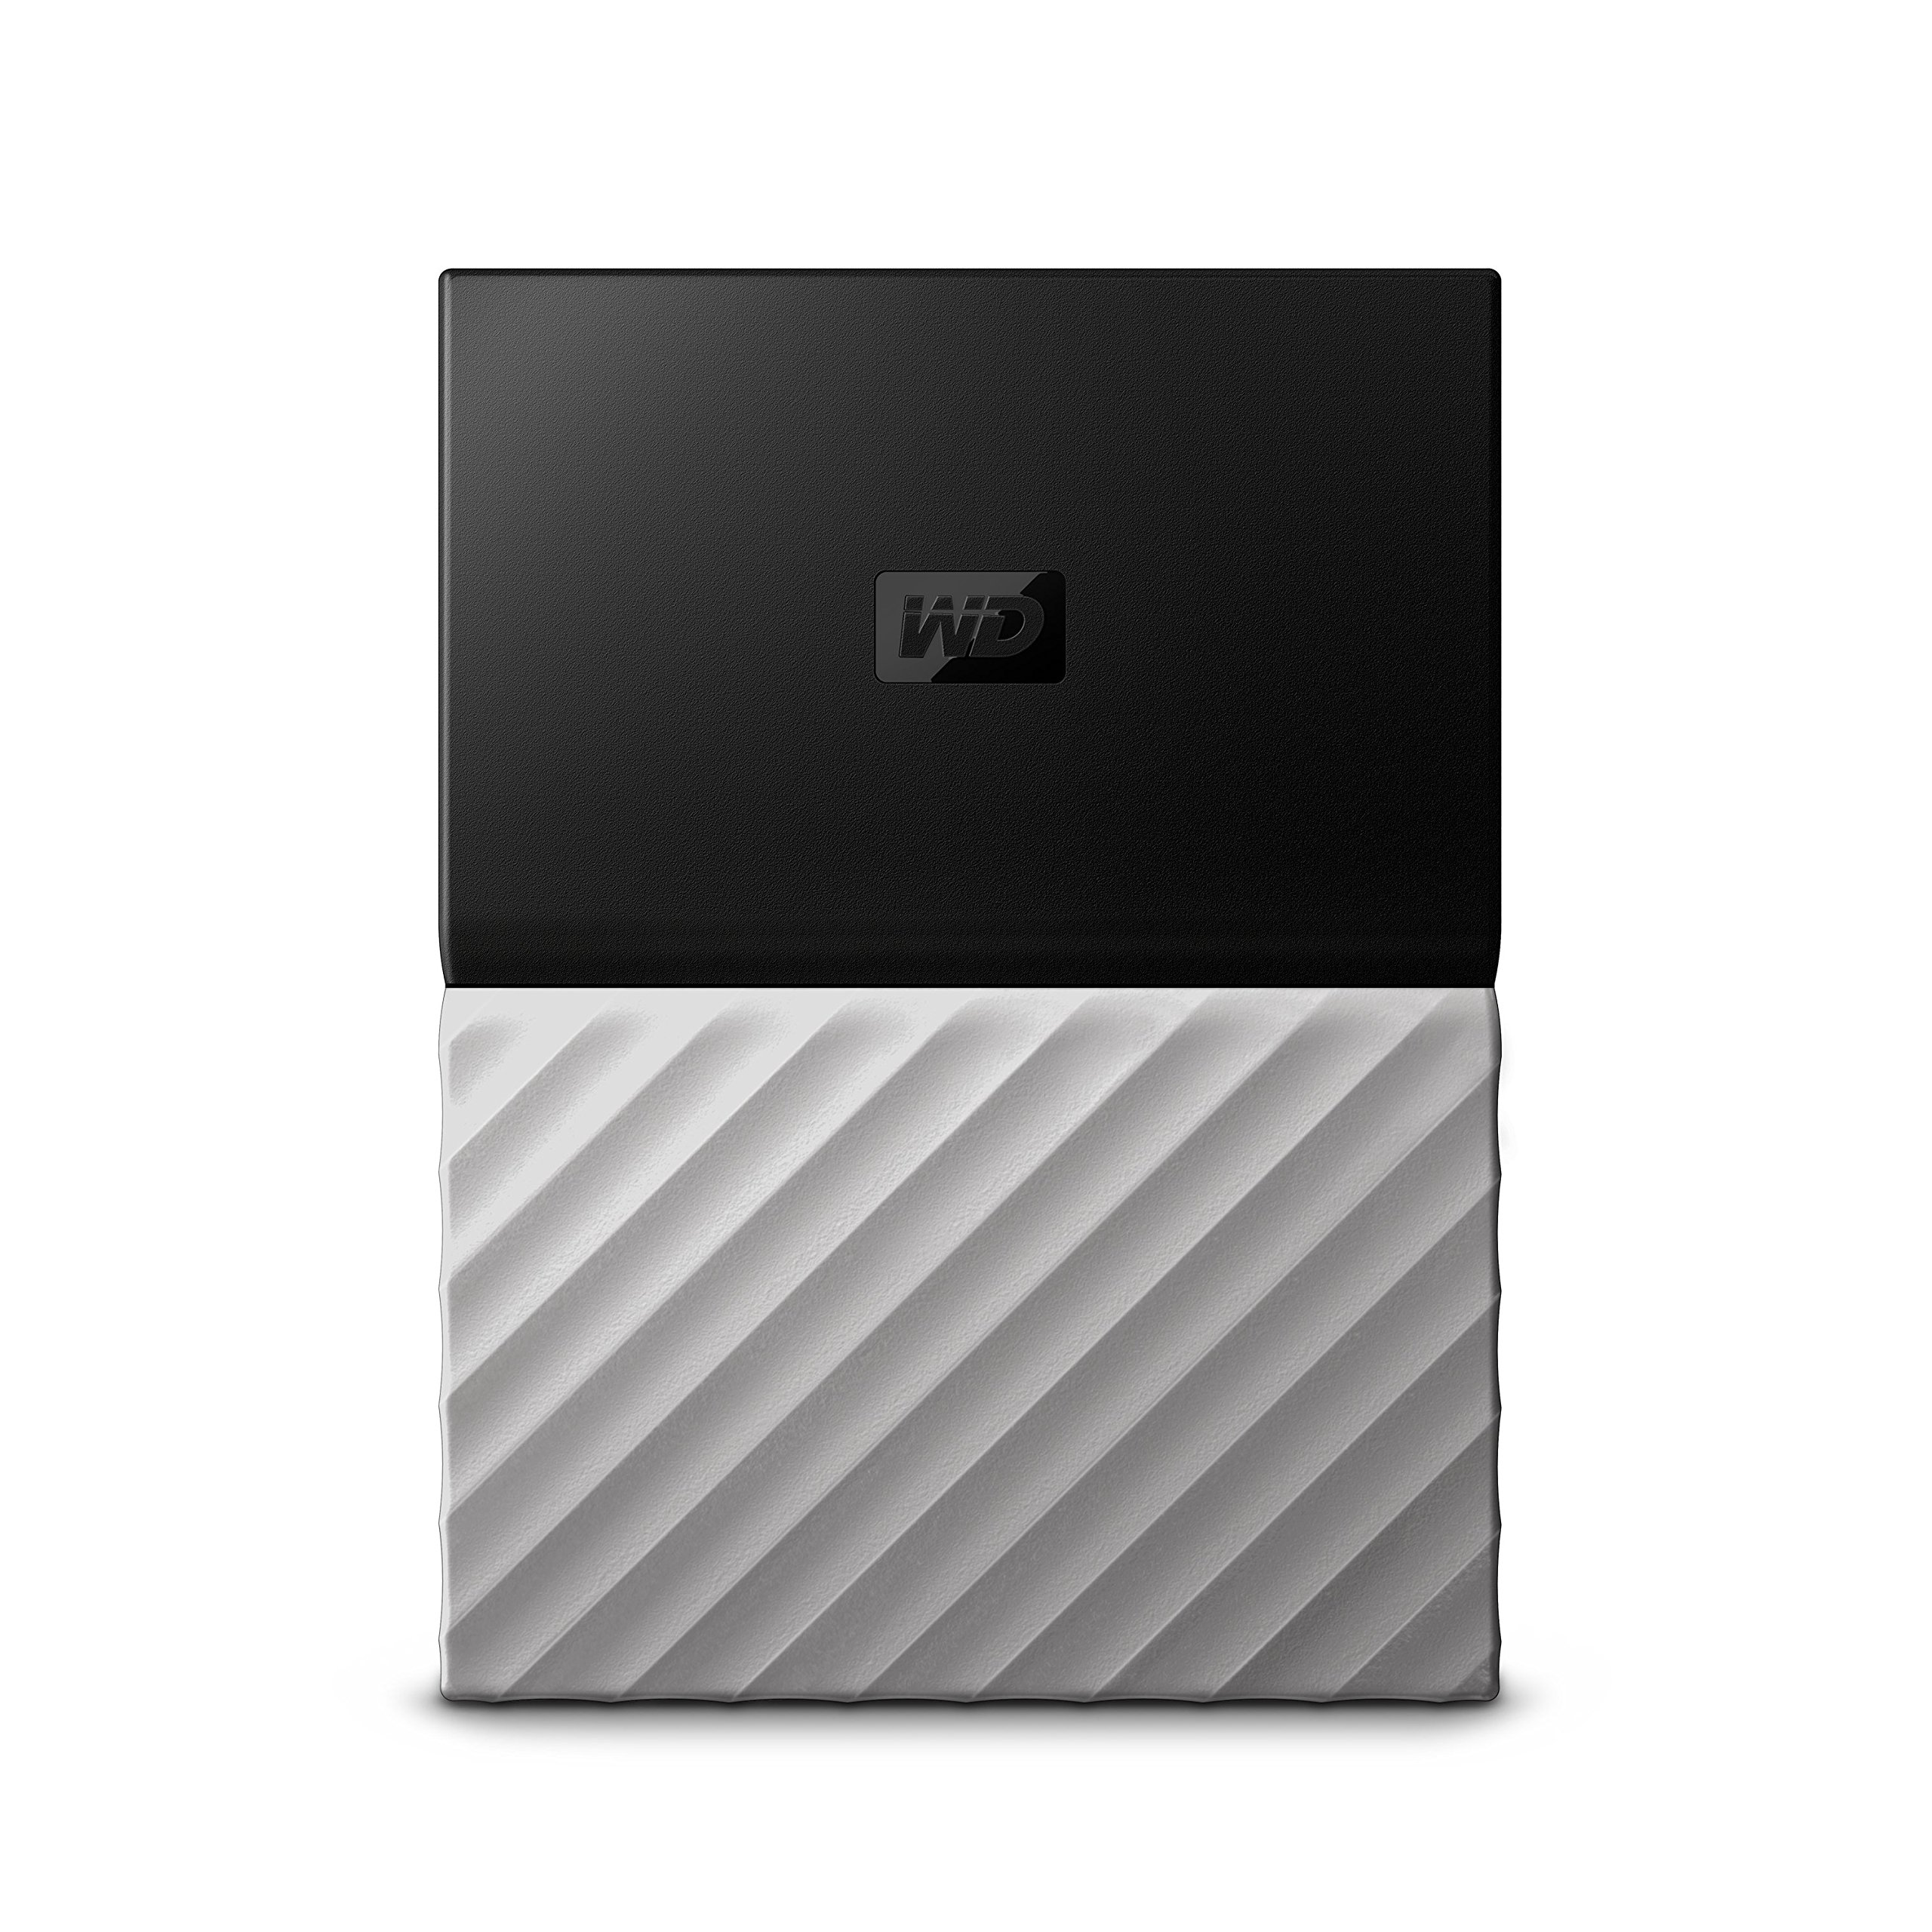 WD 1TB Black-Gray My Passport Ultra Portable External Hard Drive - USB 3.0 - WDBTLG0010BGY-WESN (Old Generation)